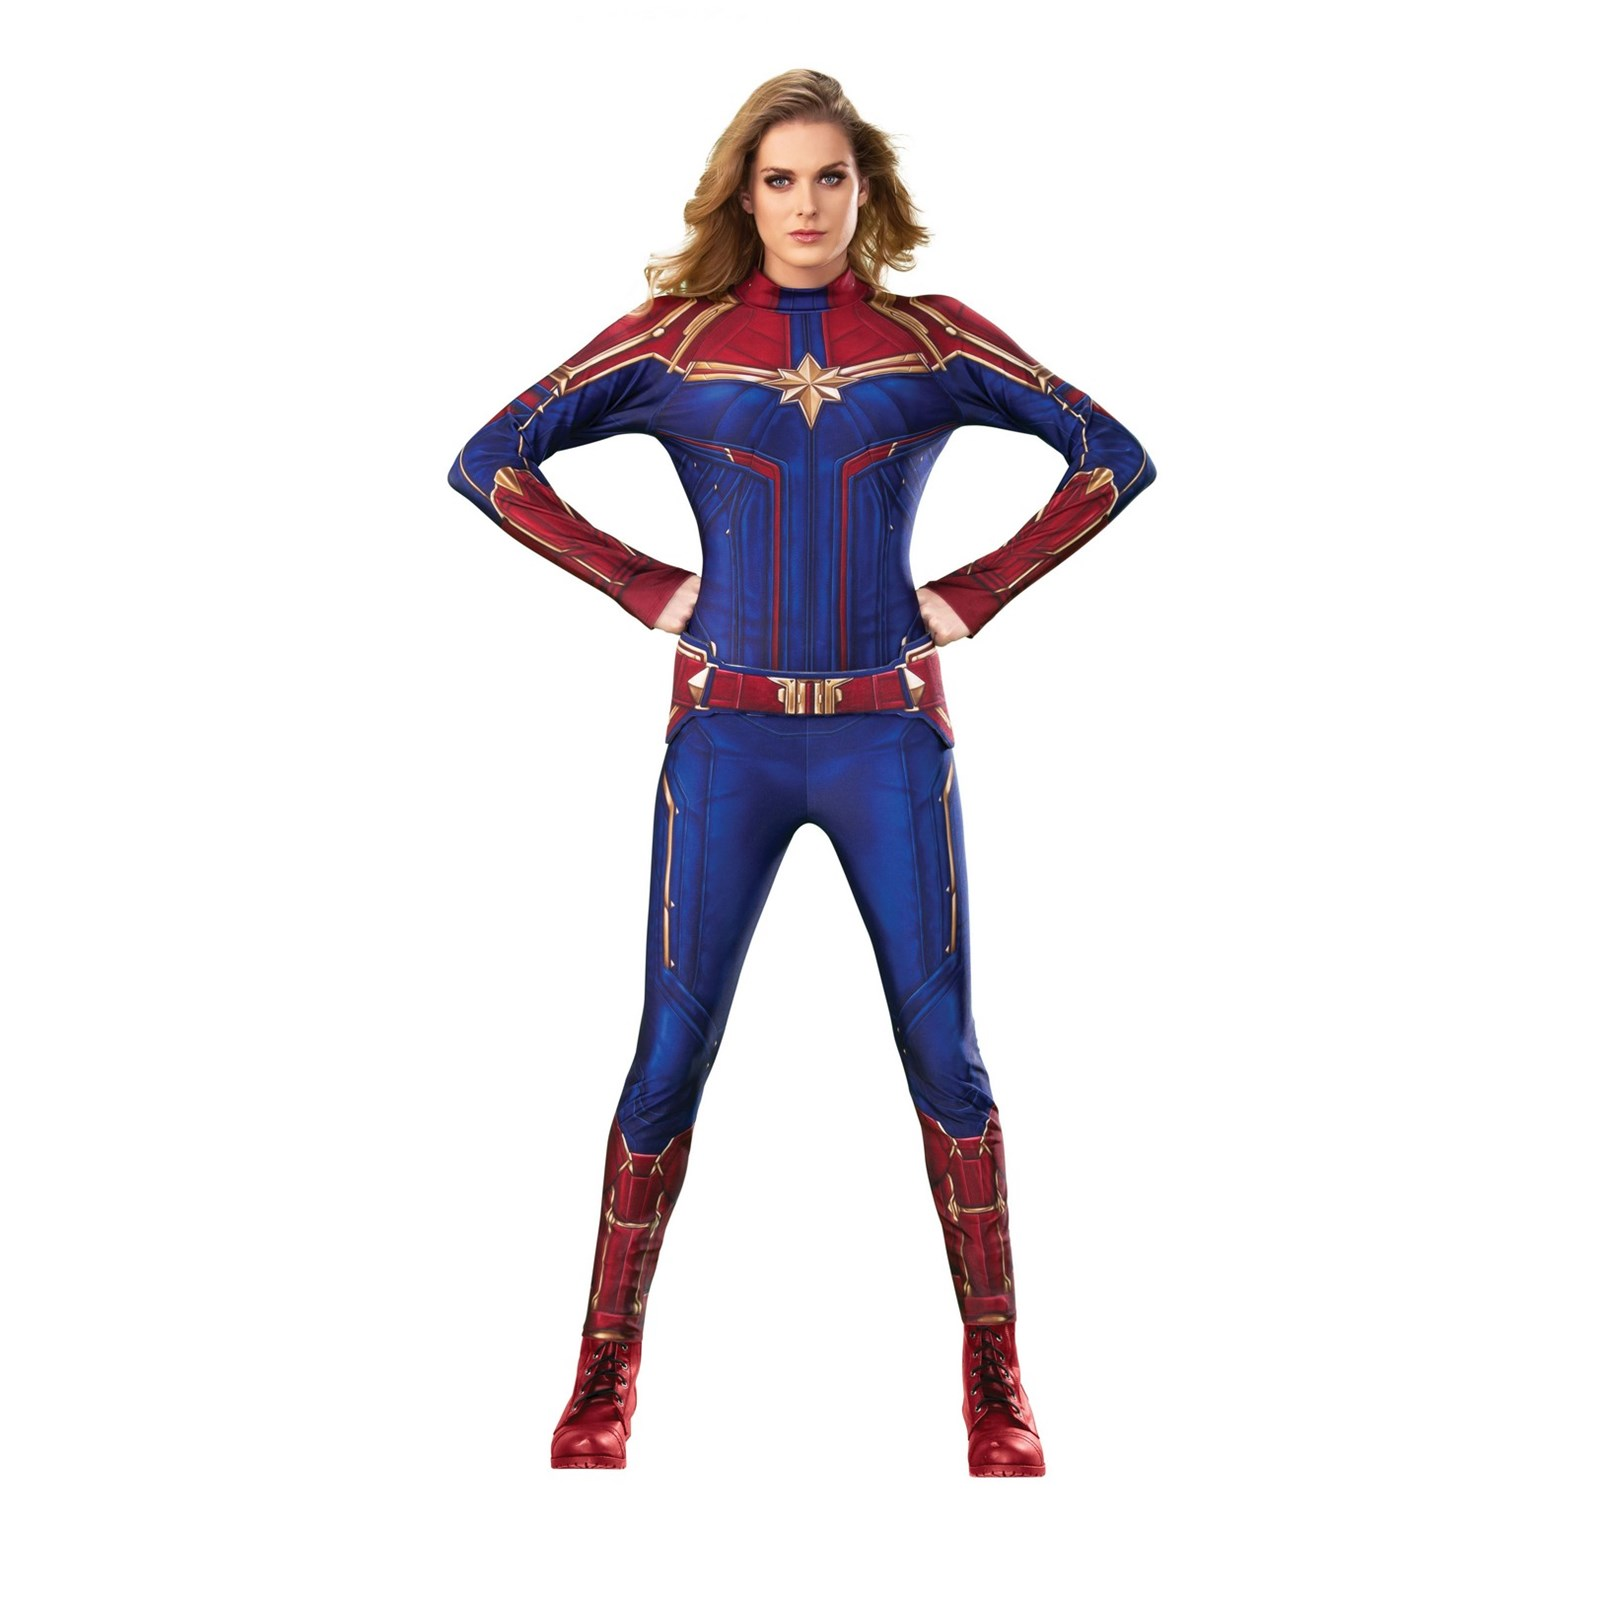 Captain Marvel Dlx X Sm 2 6 Walmart Com Walmart Com The marvel comics universe model: captain marvel dlx x sm 2 6 walmart com